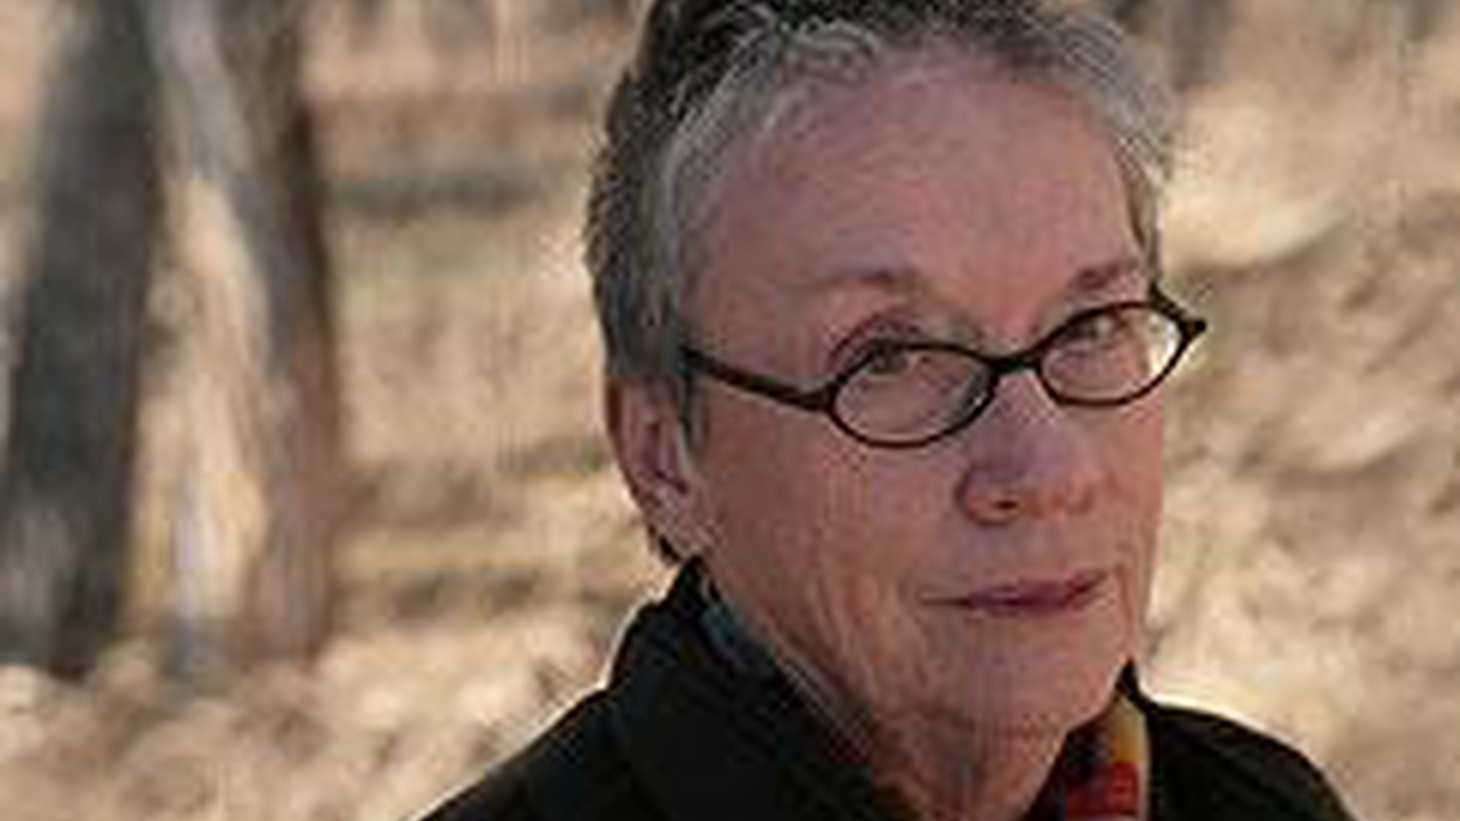 Fine Just the Way It Is: Wyoming Stories 3 (Scribner) Annie Proulx's new collection is a stew of tall tales, romantic sagebrush sagas, and genuinely affecting stories of survival on the range.   *  Language Advisory